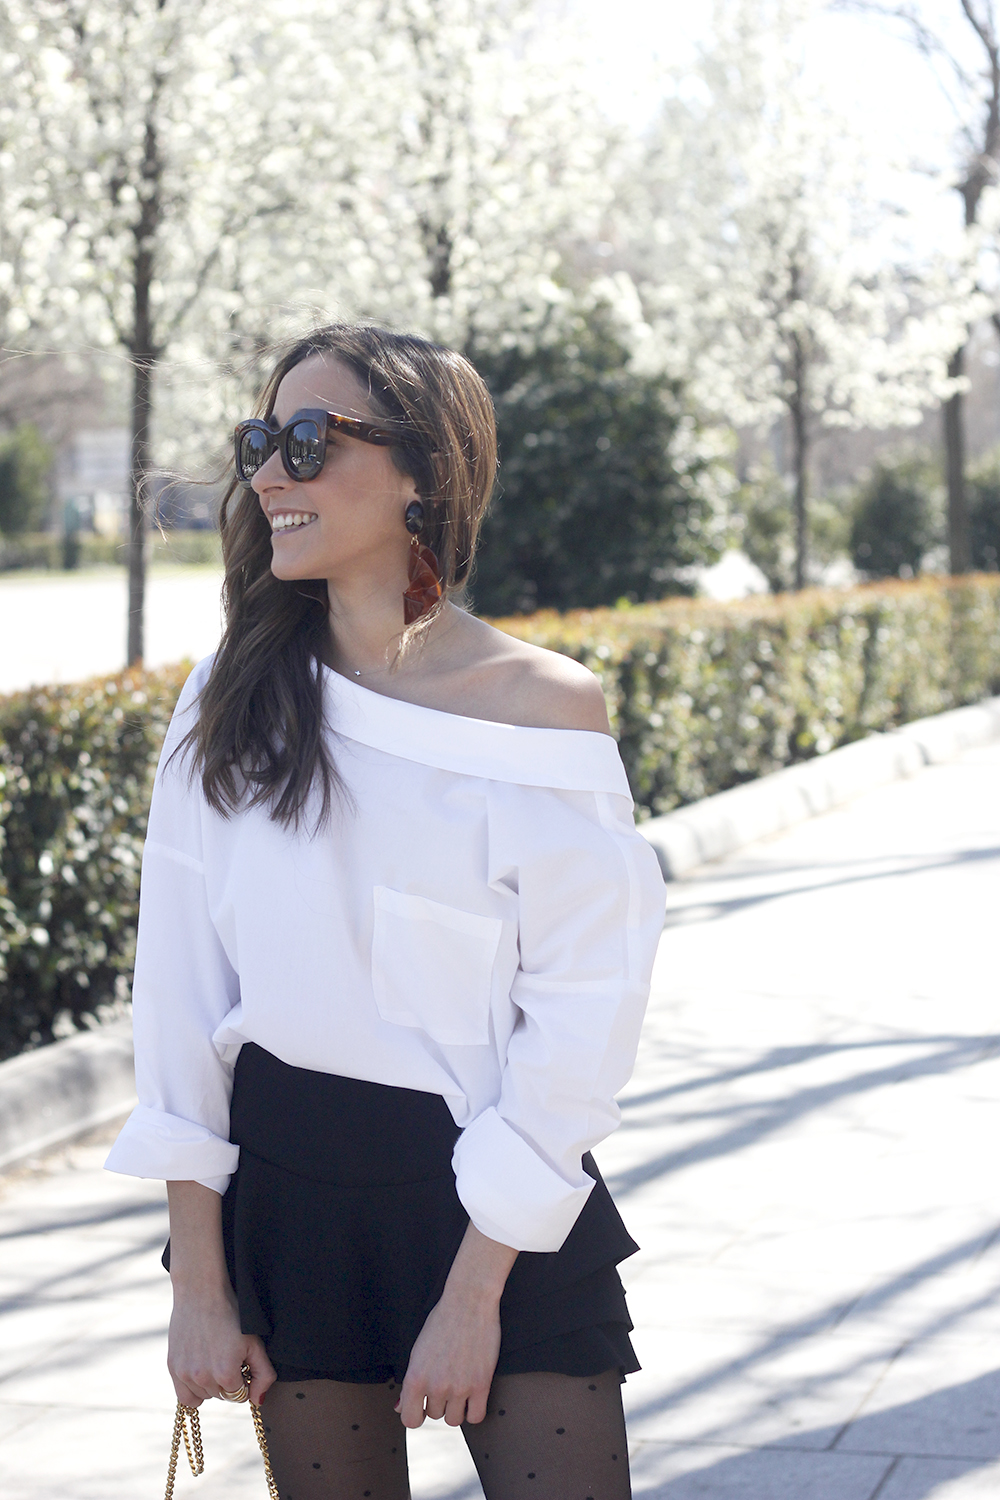 Ruffled shorts white shirt saint lauren bag céline outfit style06